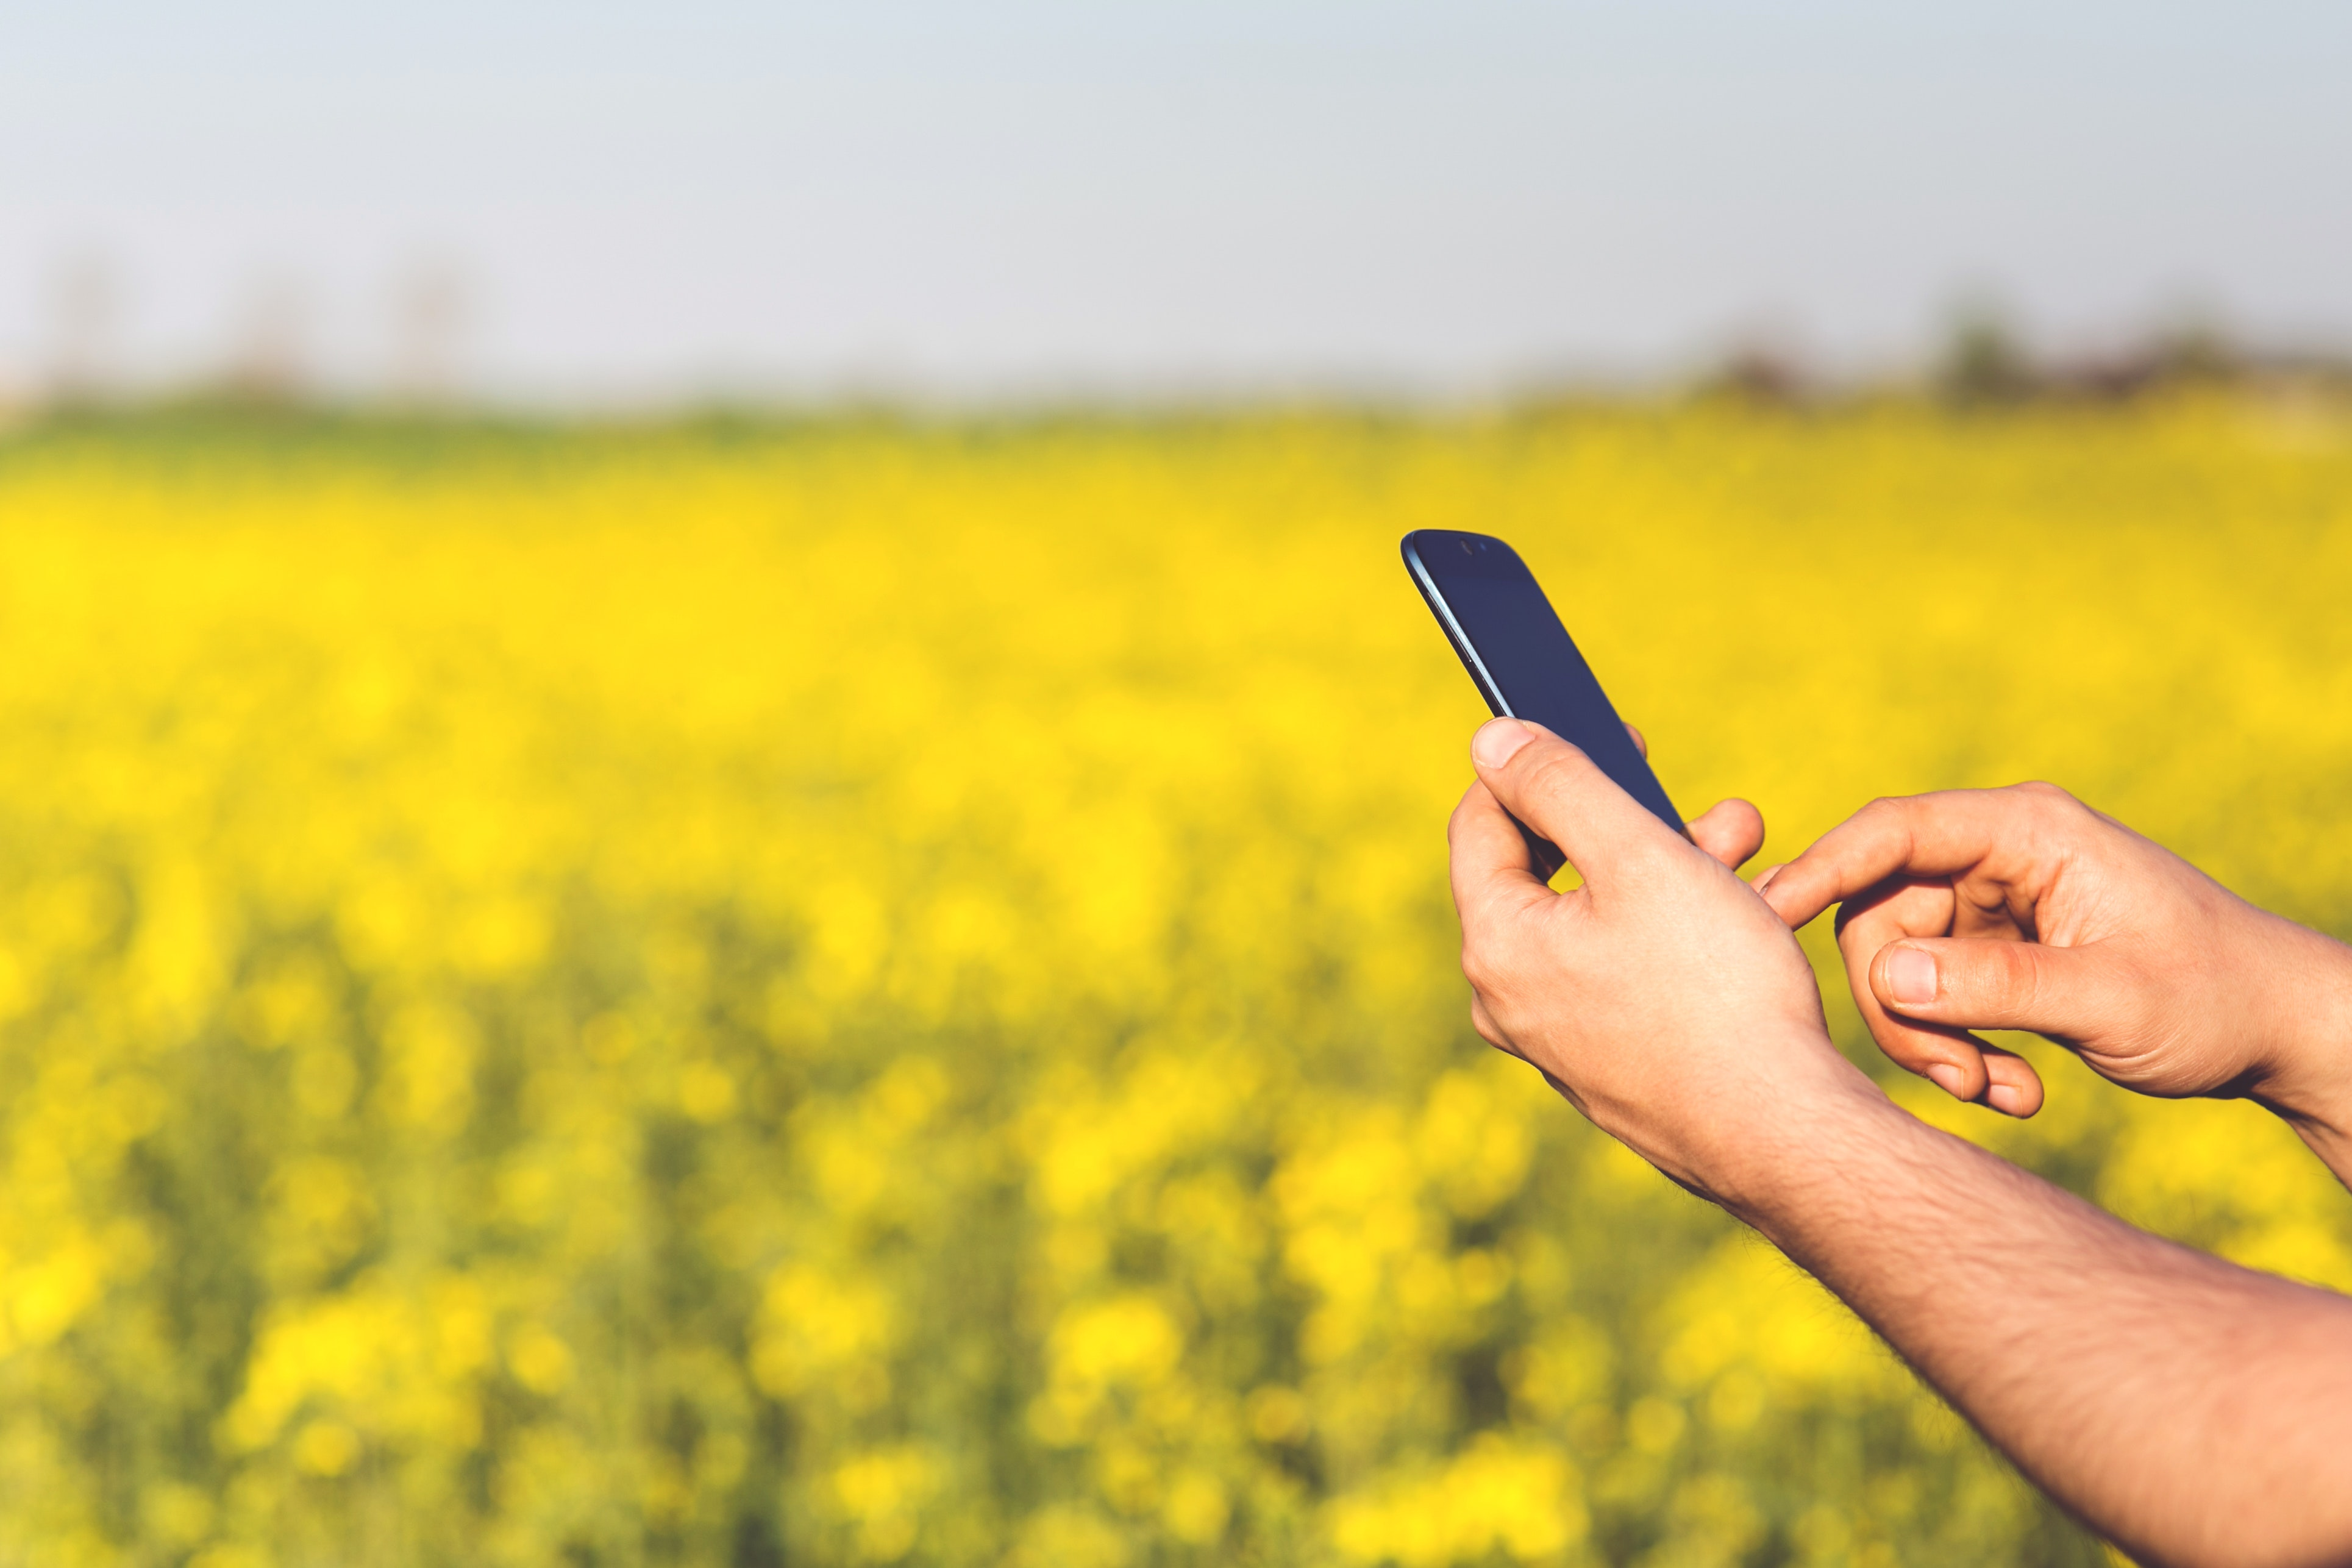 Smartphone Acer Jade S in the hands of a man on a background of yellow flowers, Acer, Agriculture, Environment, Field, HQ Photo